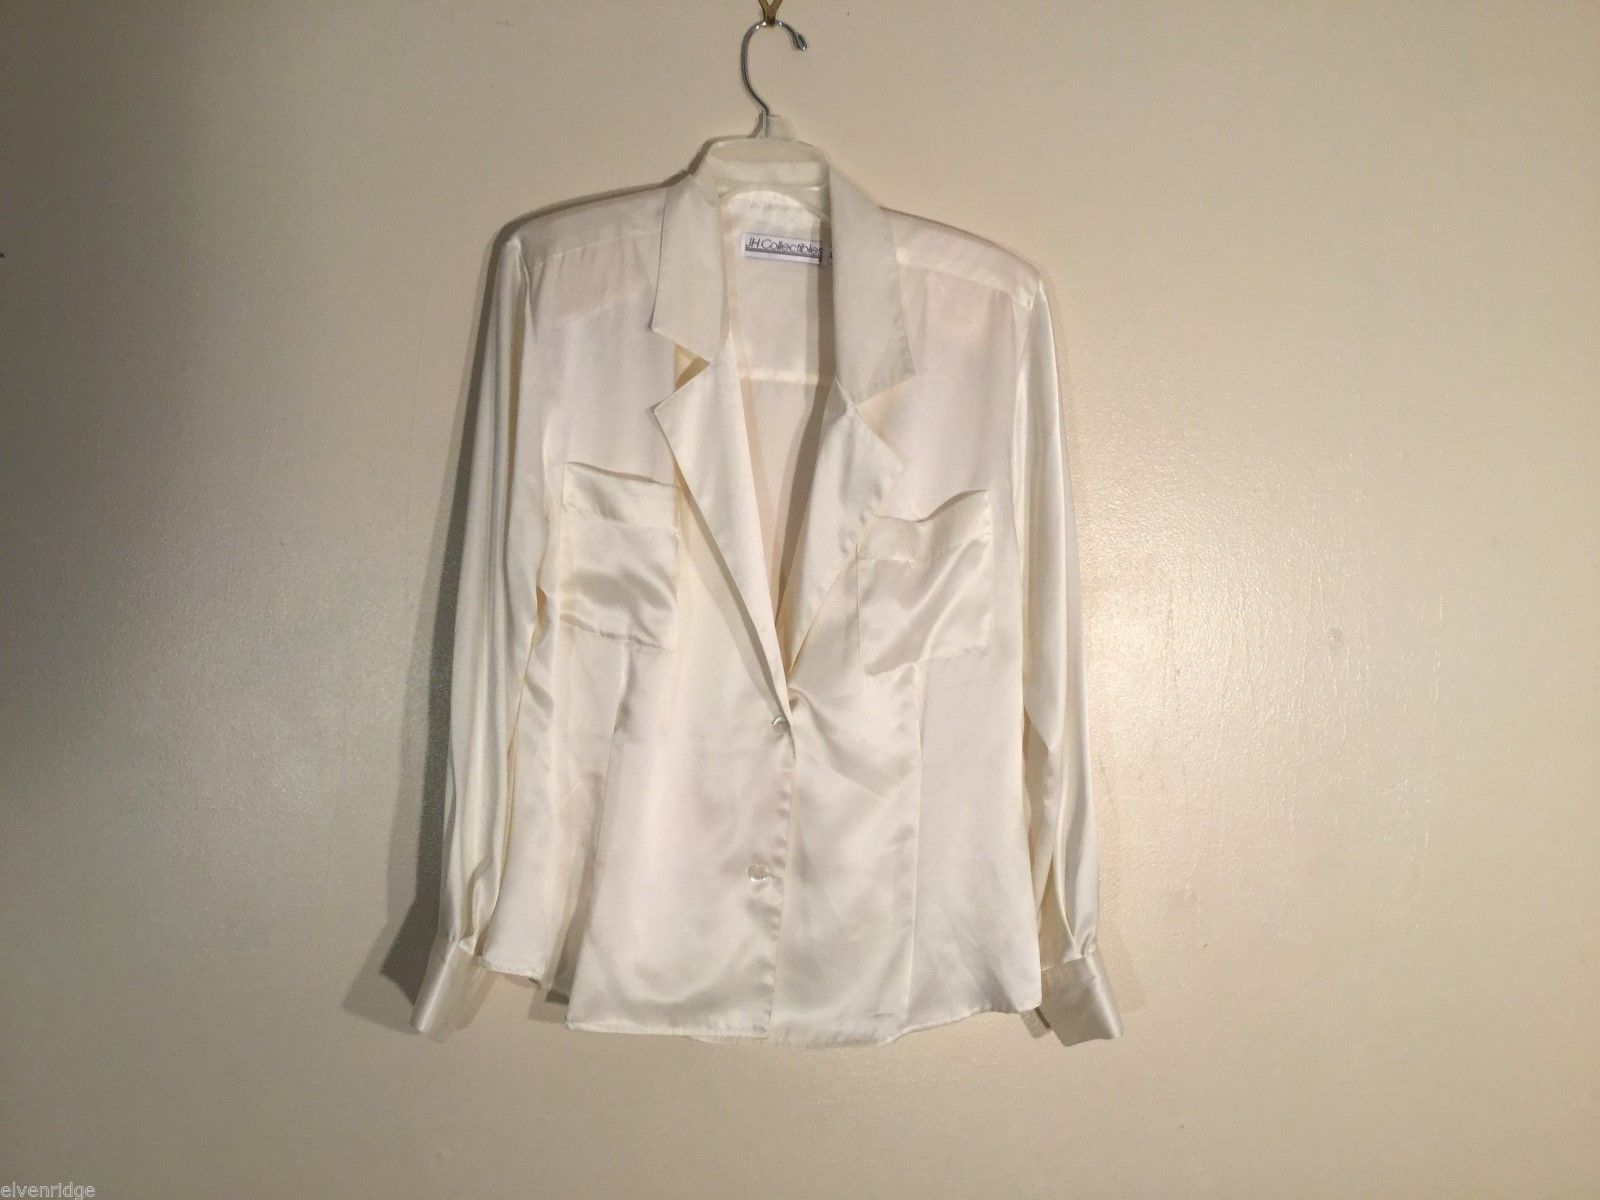 Womens JH Collectibles White Silky Blouse, Size 12